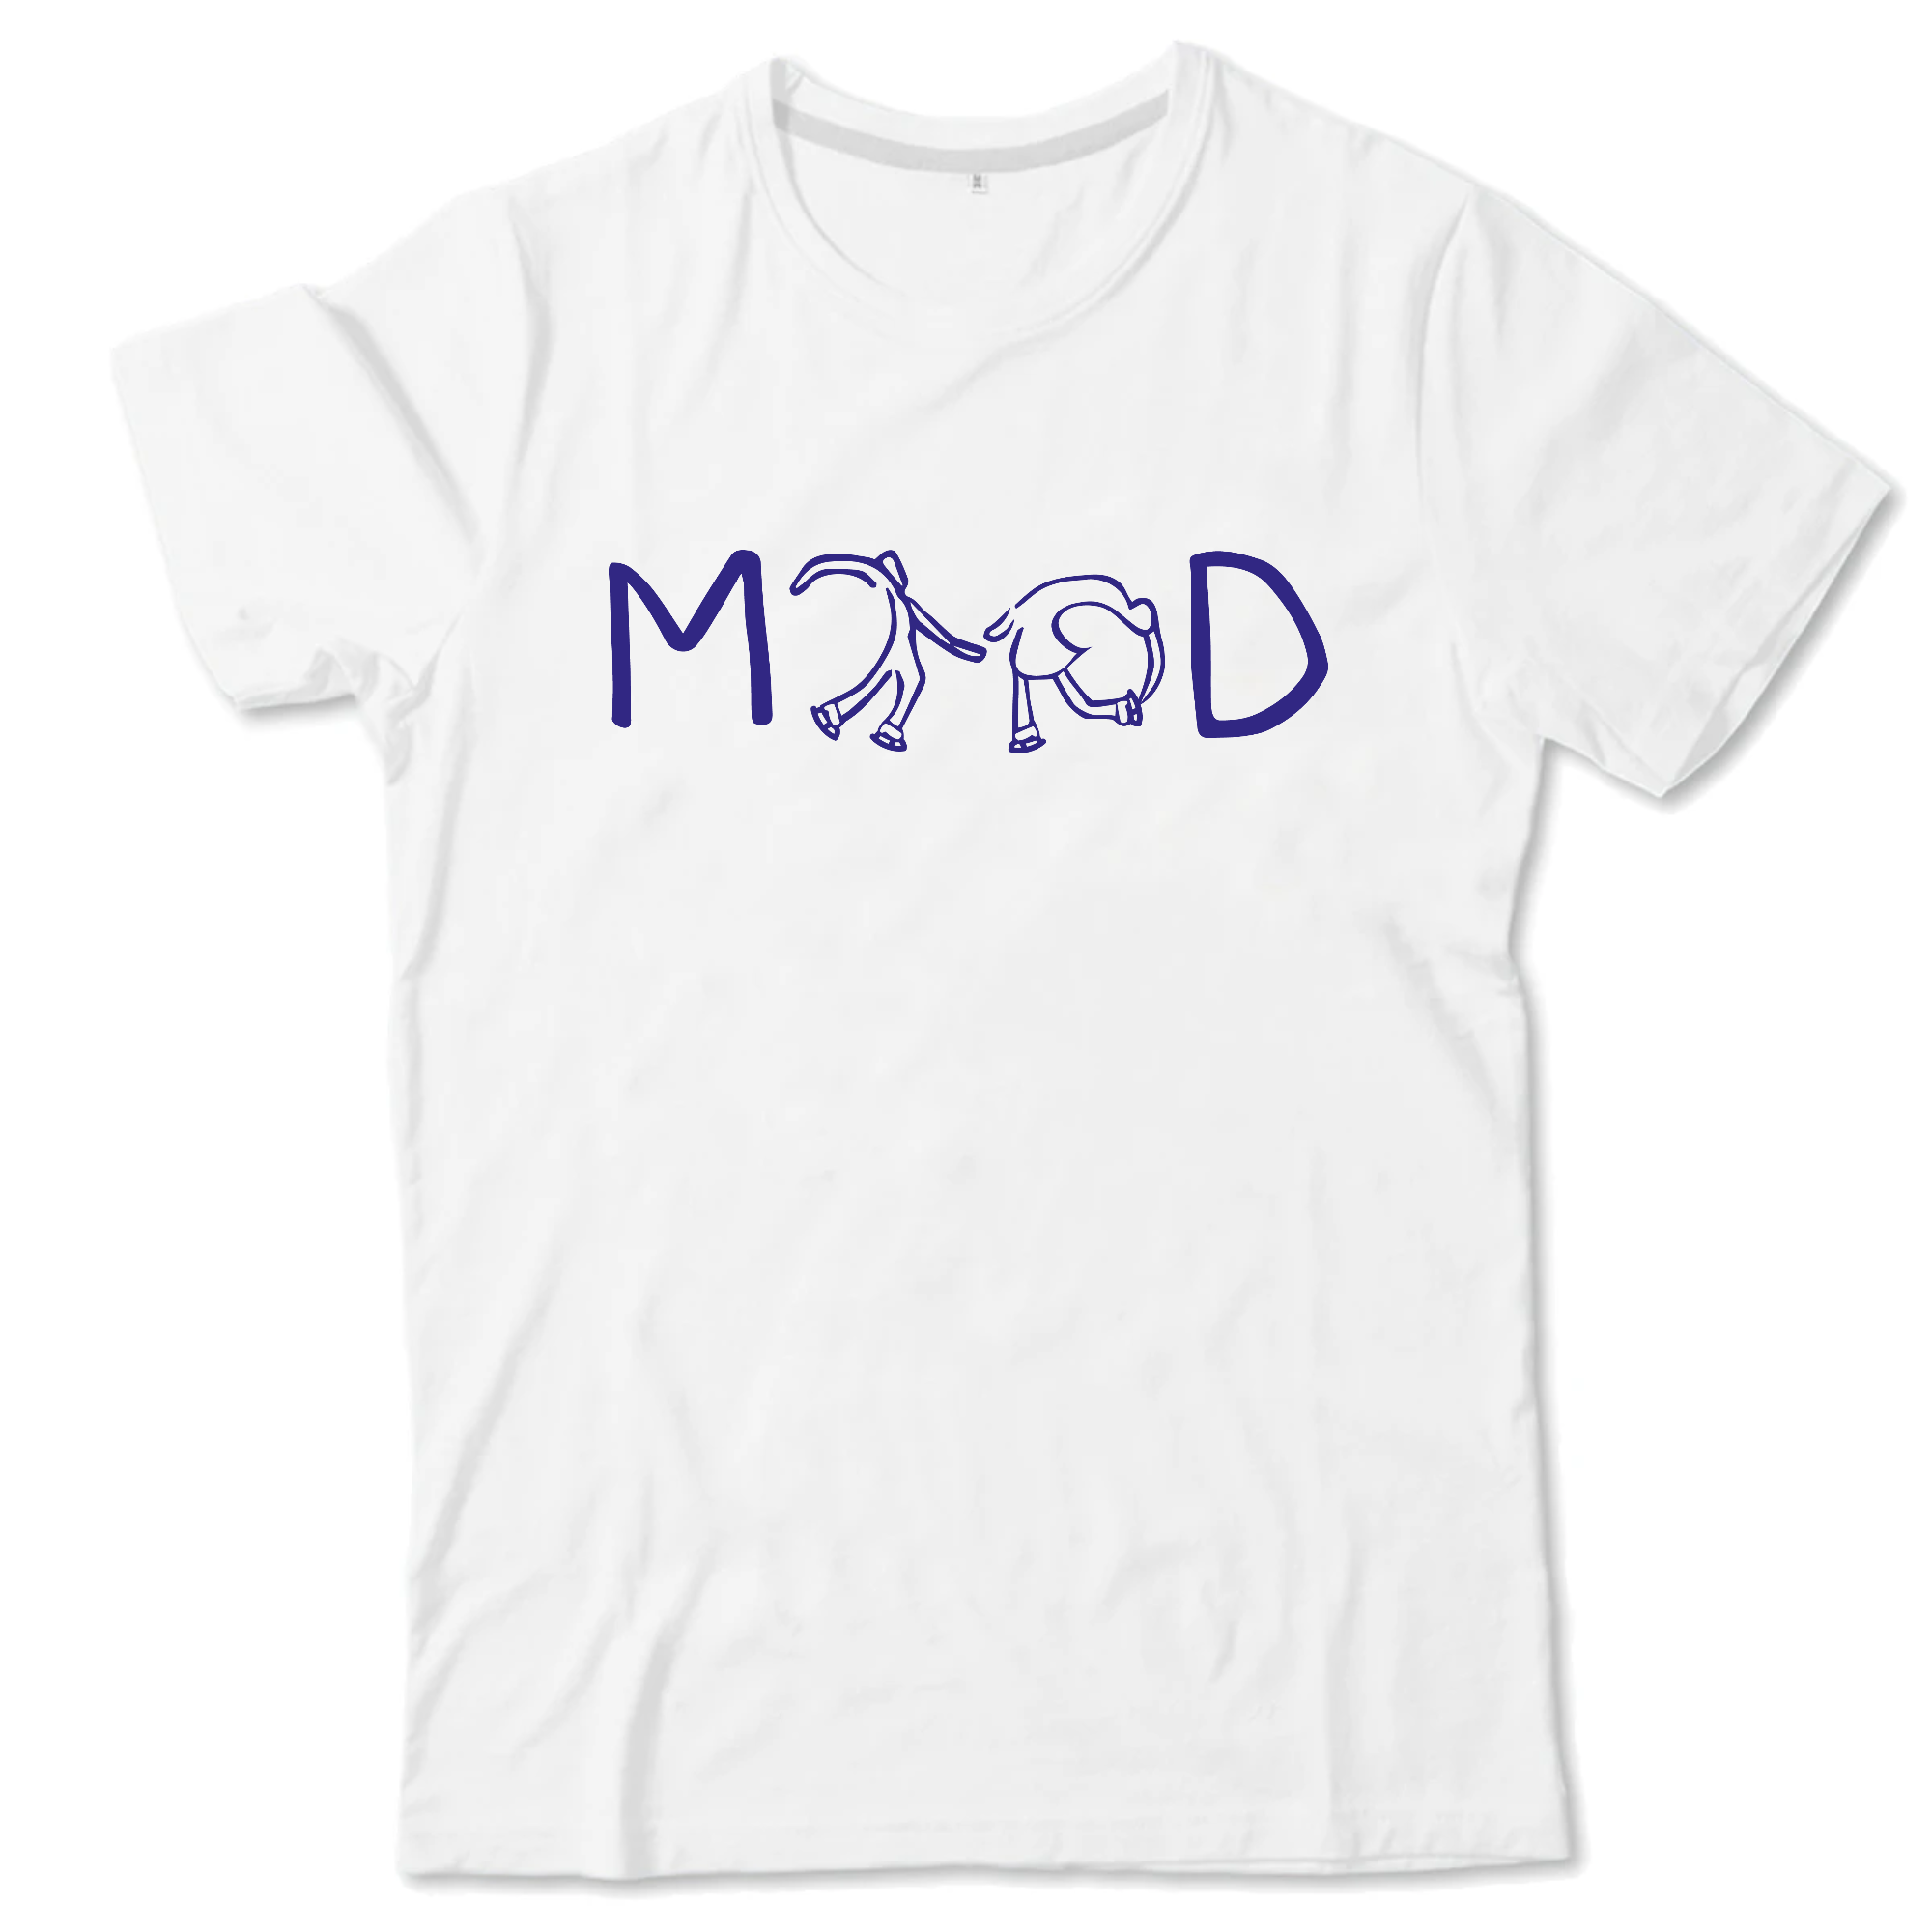 T-SHIRT ENFANT - MOOD BLEU